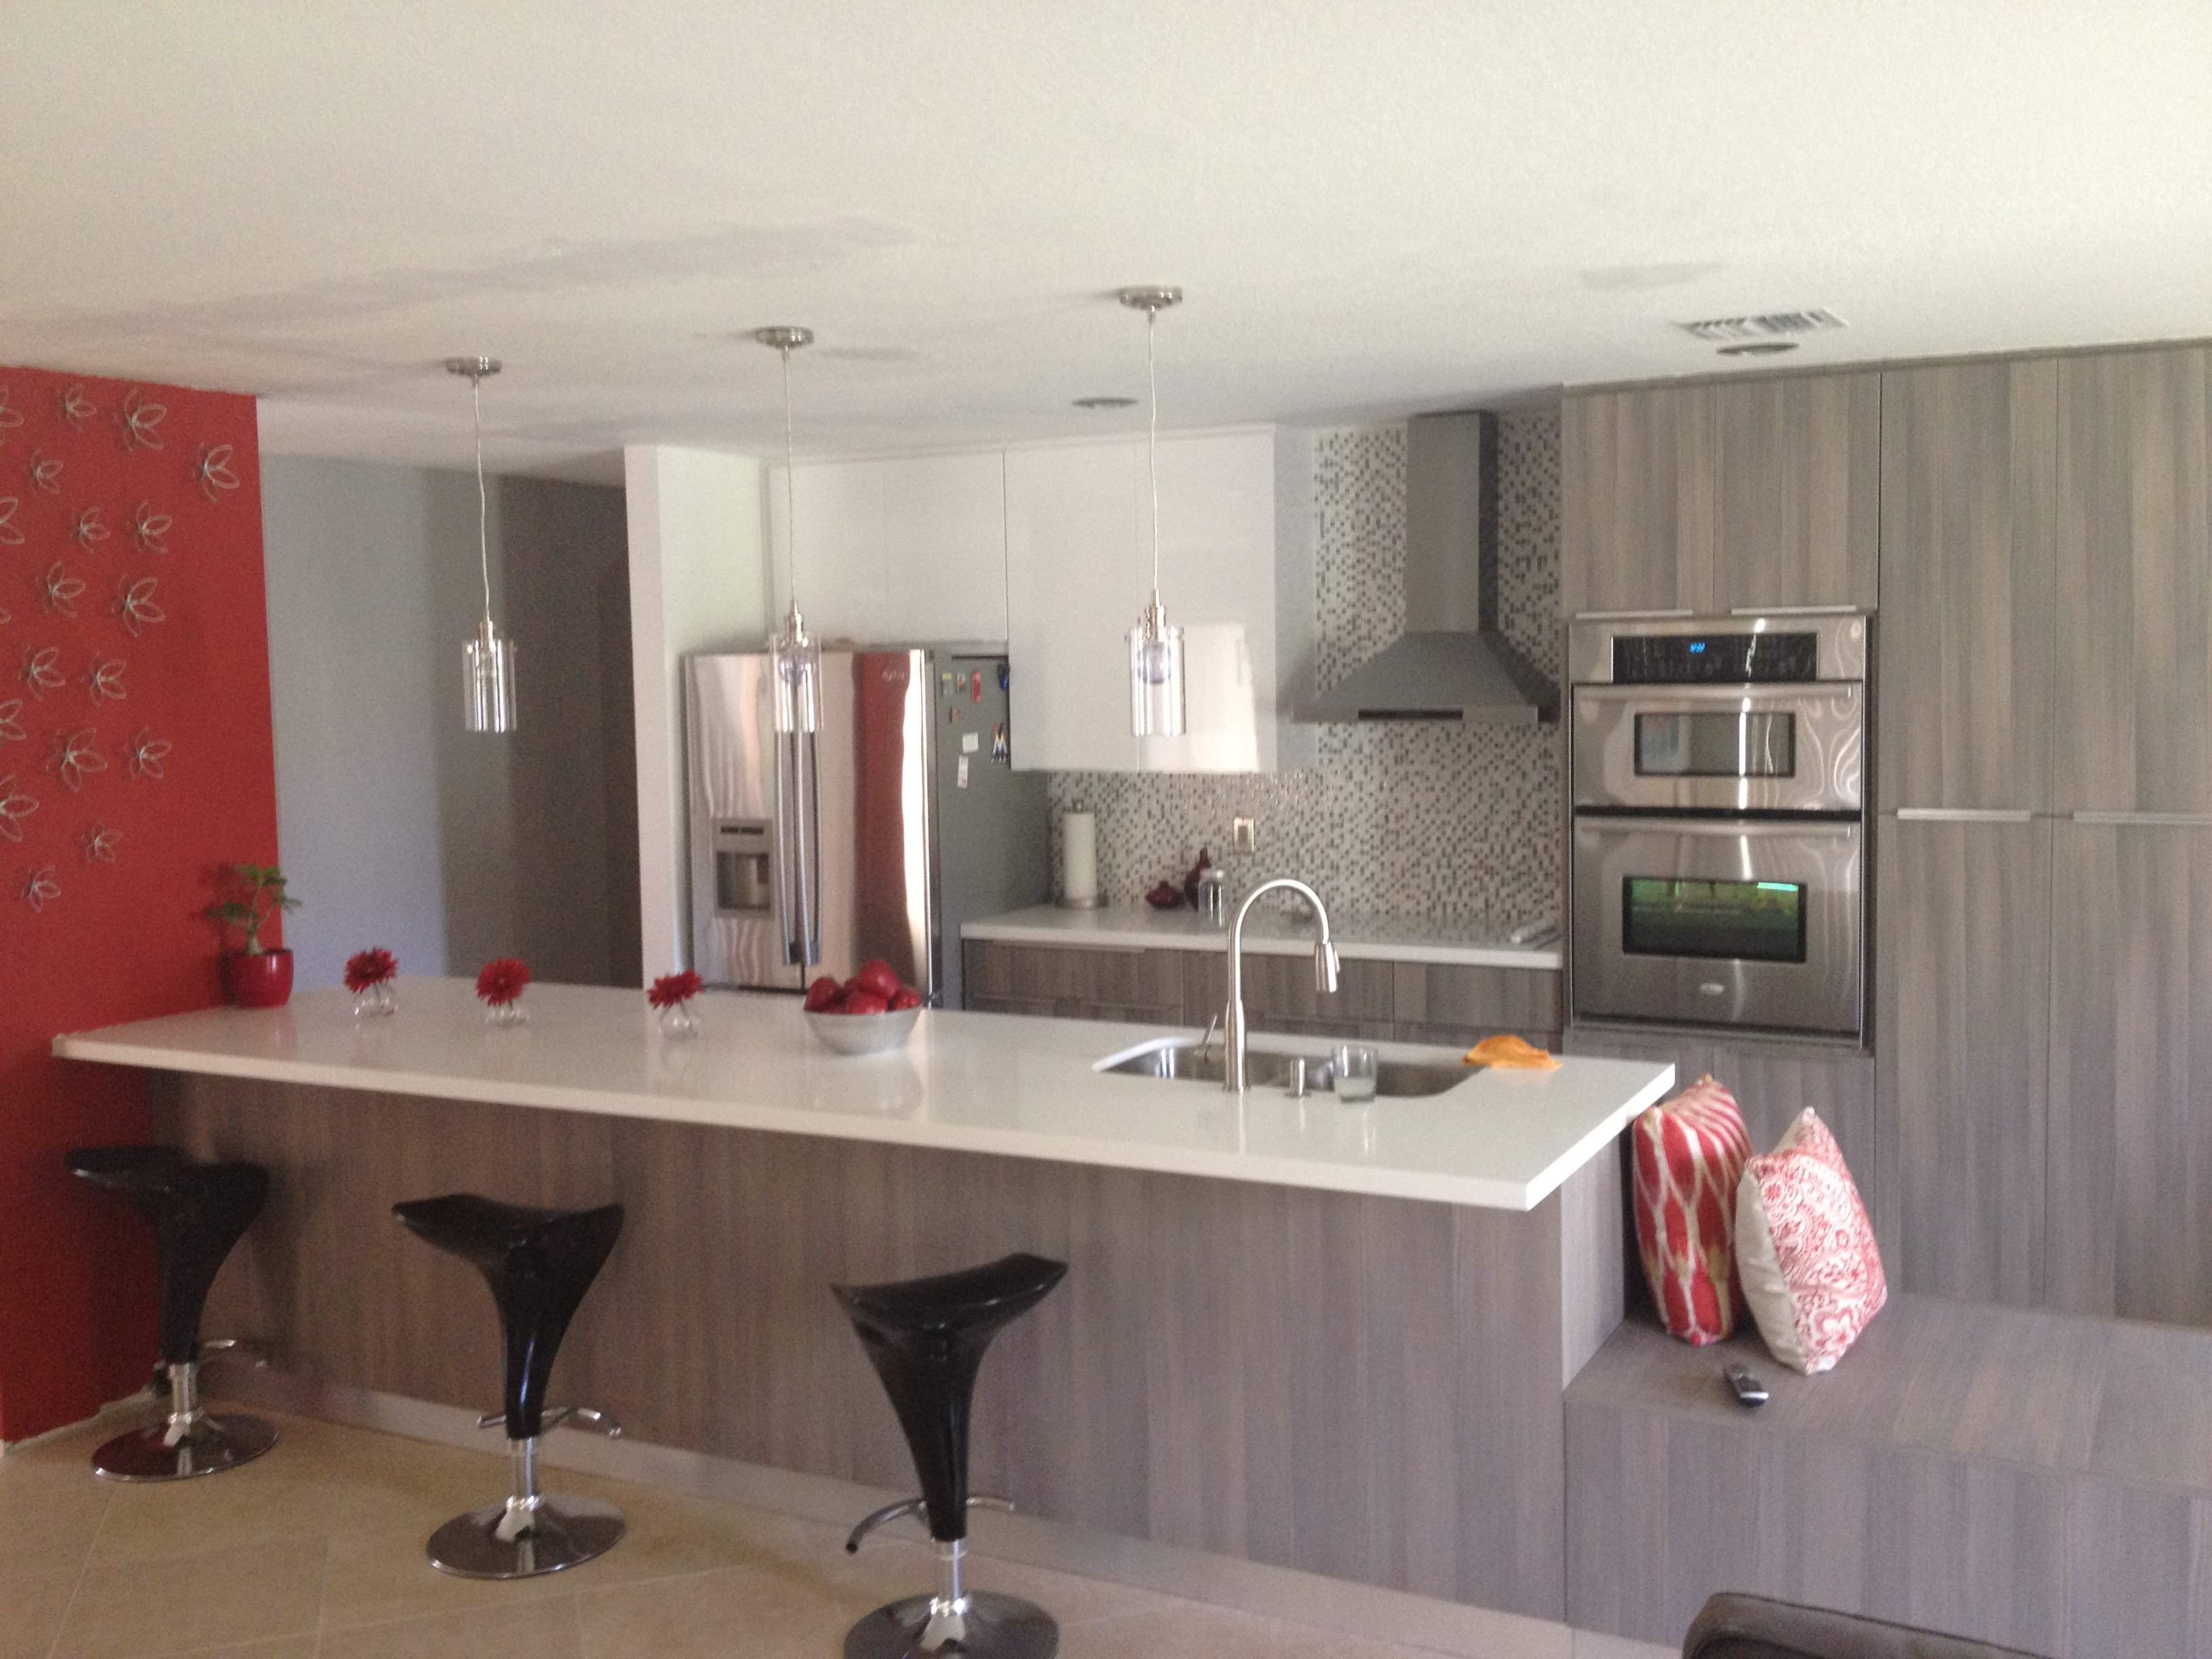 Home Renovation Aventura, Boca Raton, Coral Gables, Fort Lauderdale, Hialeah, Miami, Weston